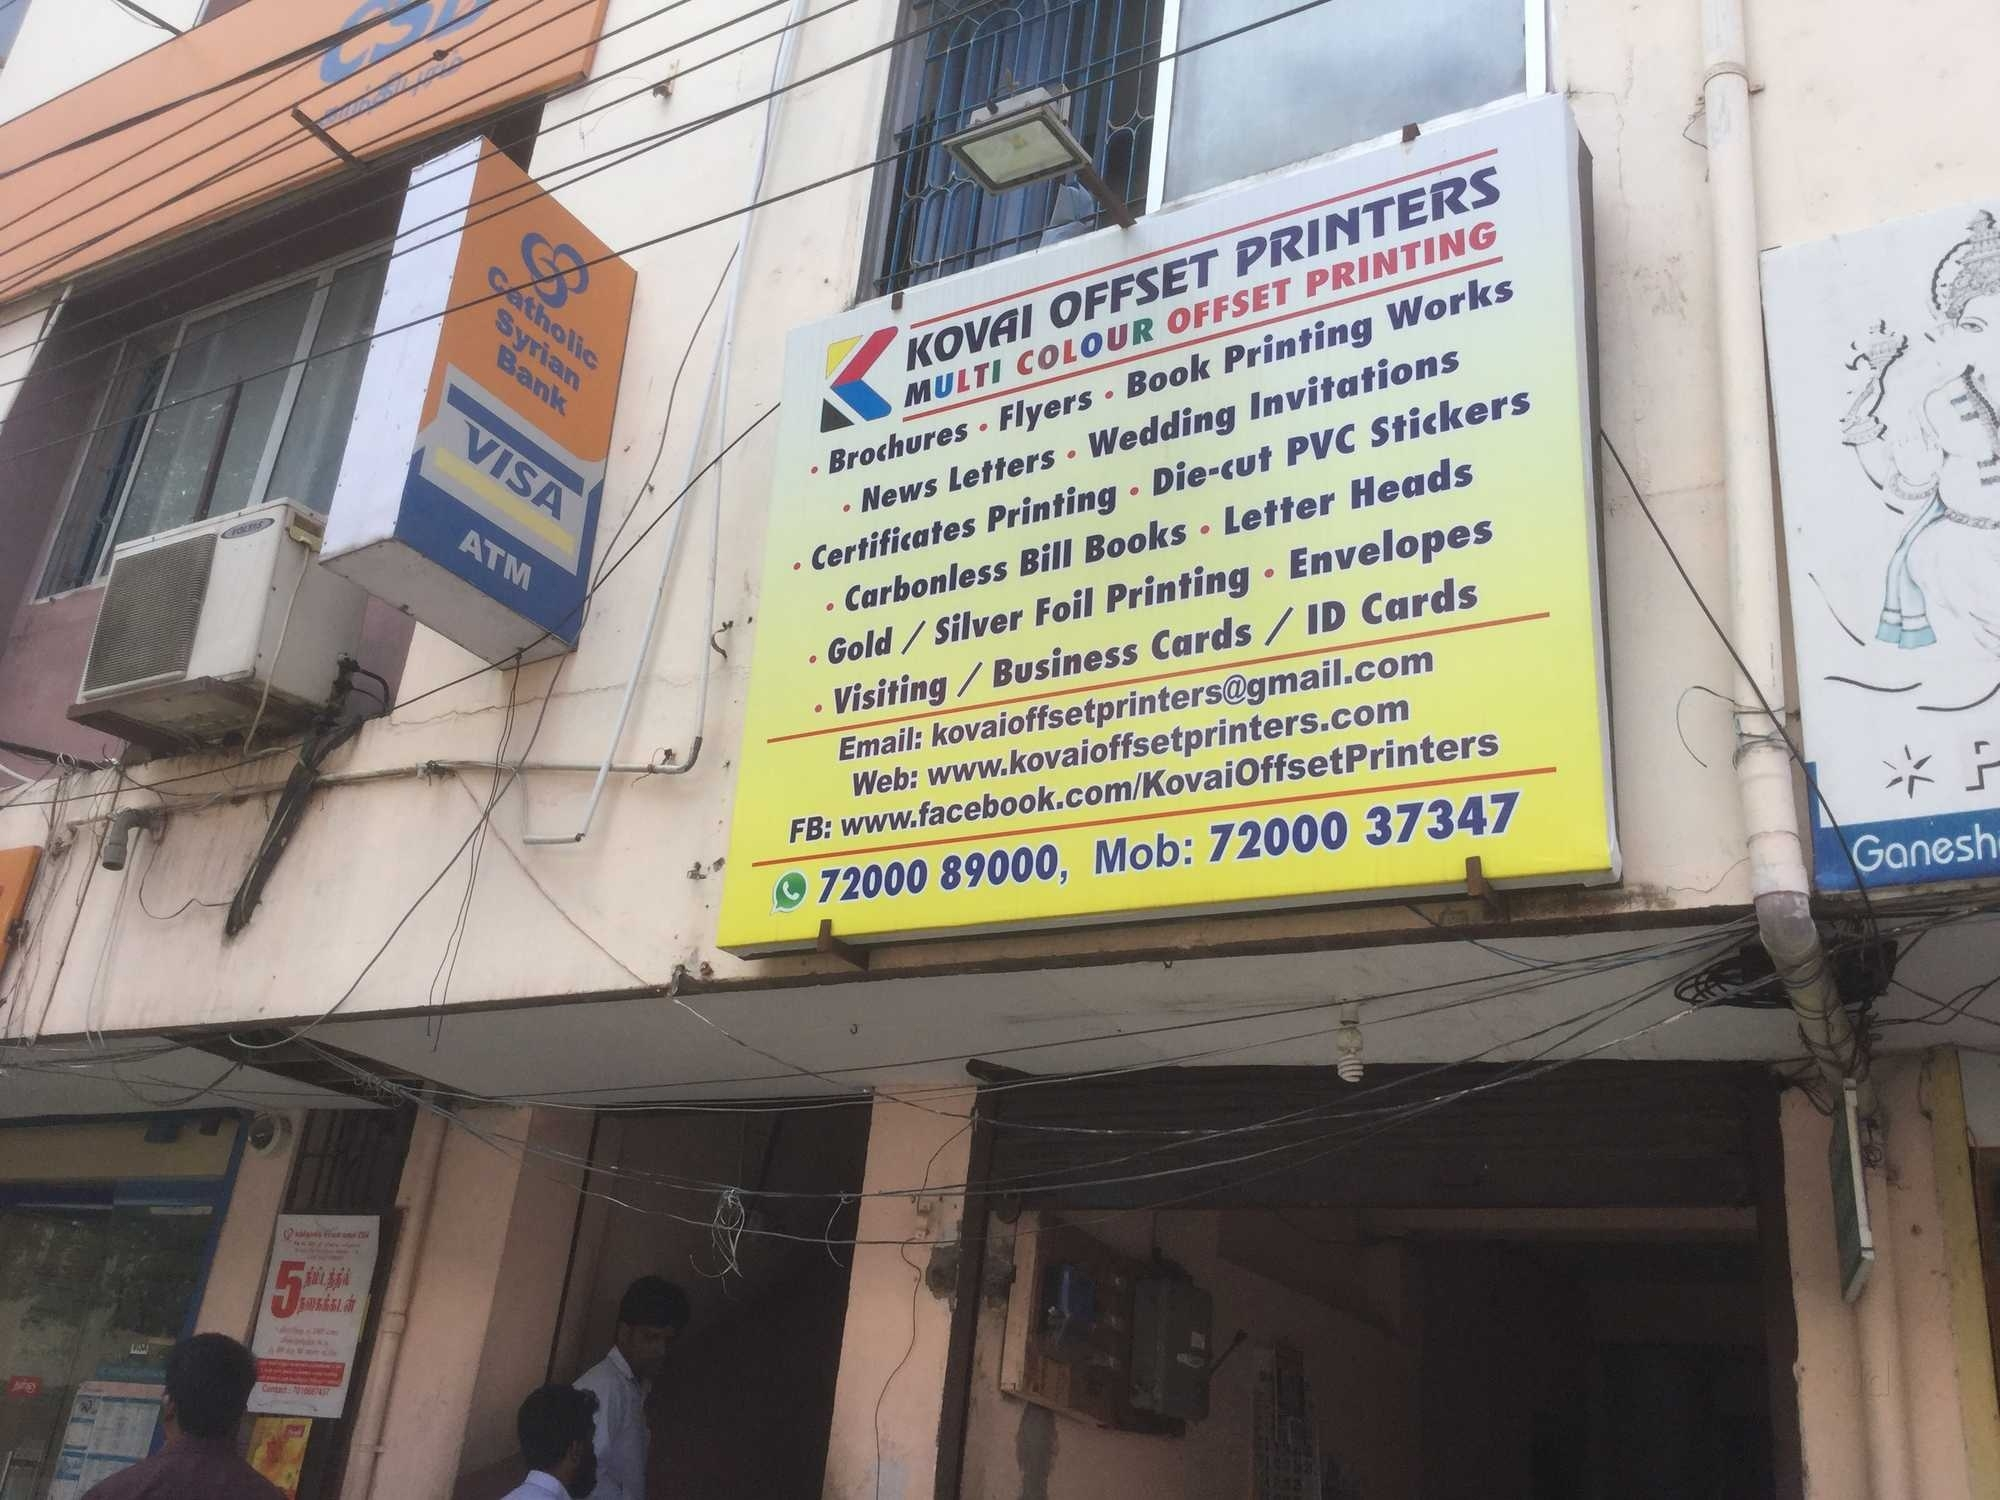 Printing Press In Coimbatore - Printing Services - Justdial_Calendar Printing Cost In Coimbatore